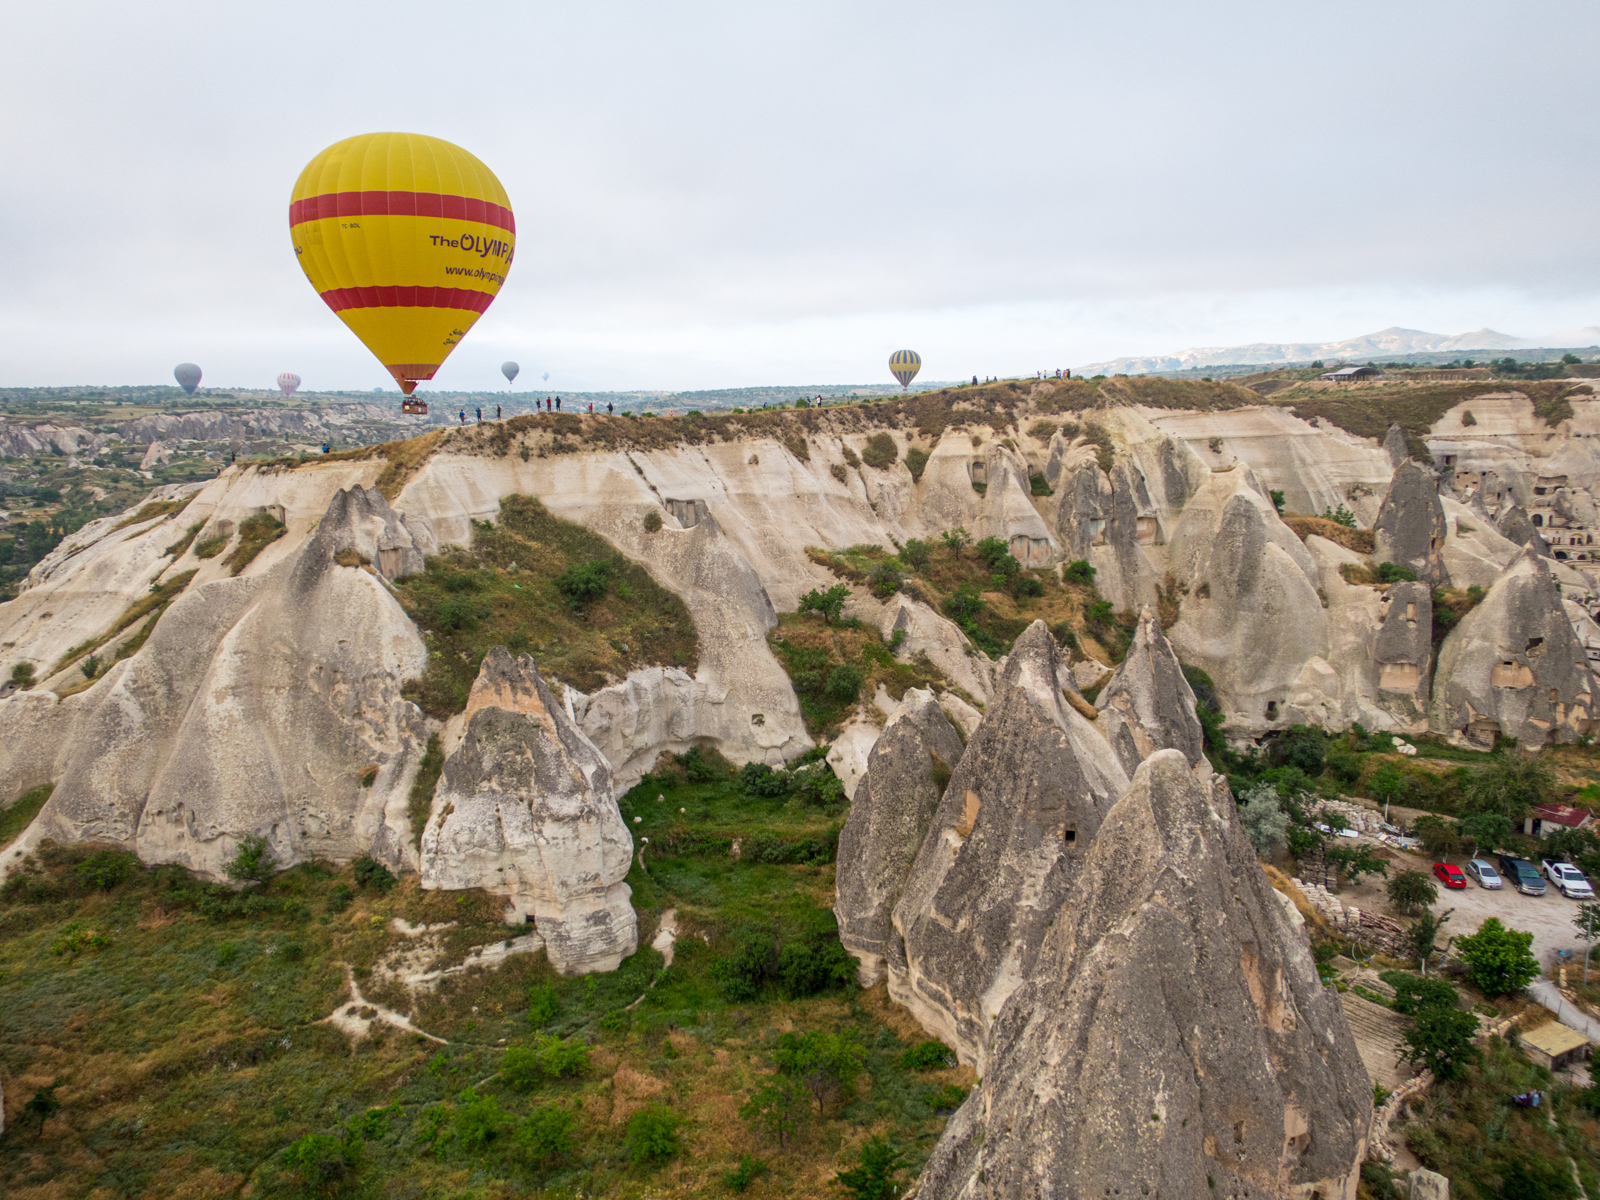 A balloon flies by a scenic outlook